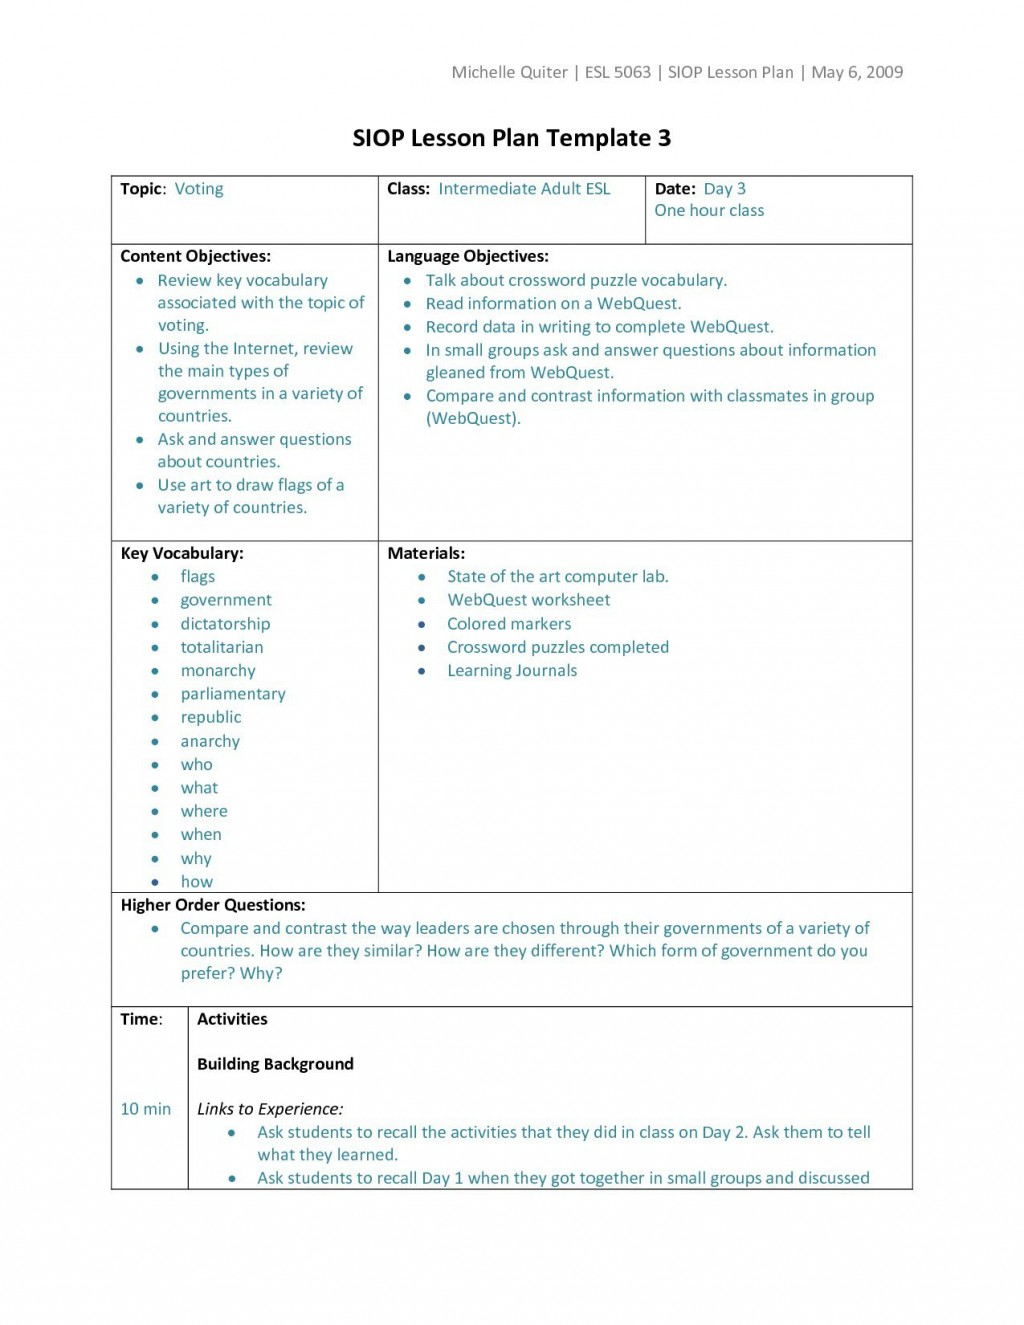 006 Wondrou Siop Lesson Plan Template 1 Design  Example First Grade Word Document 1stLarge